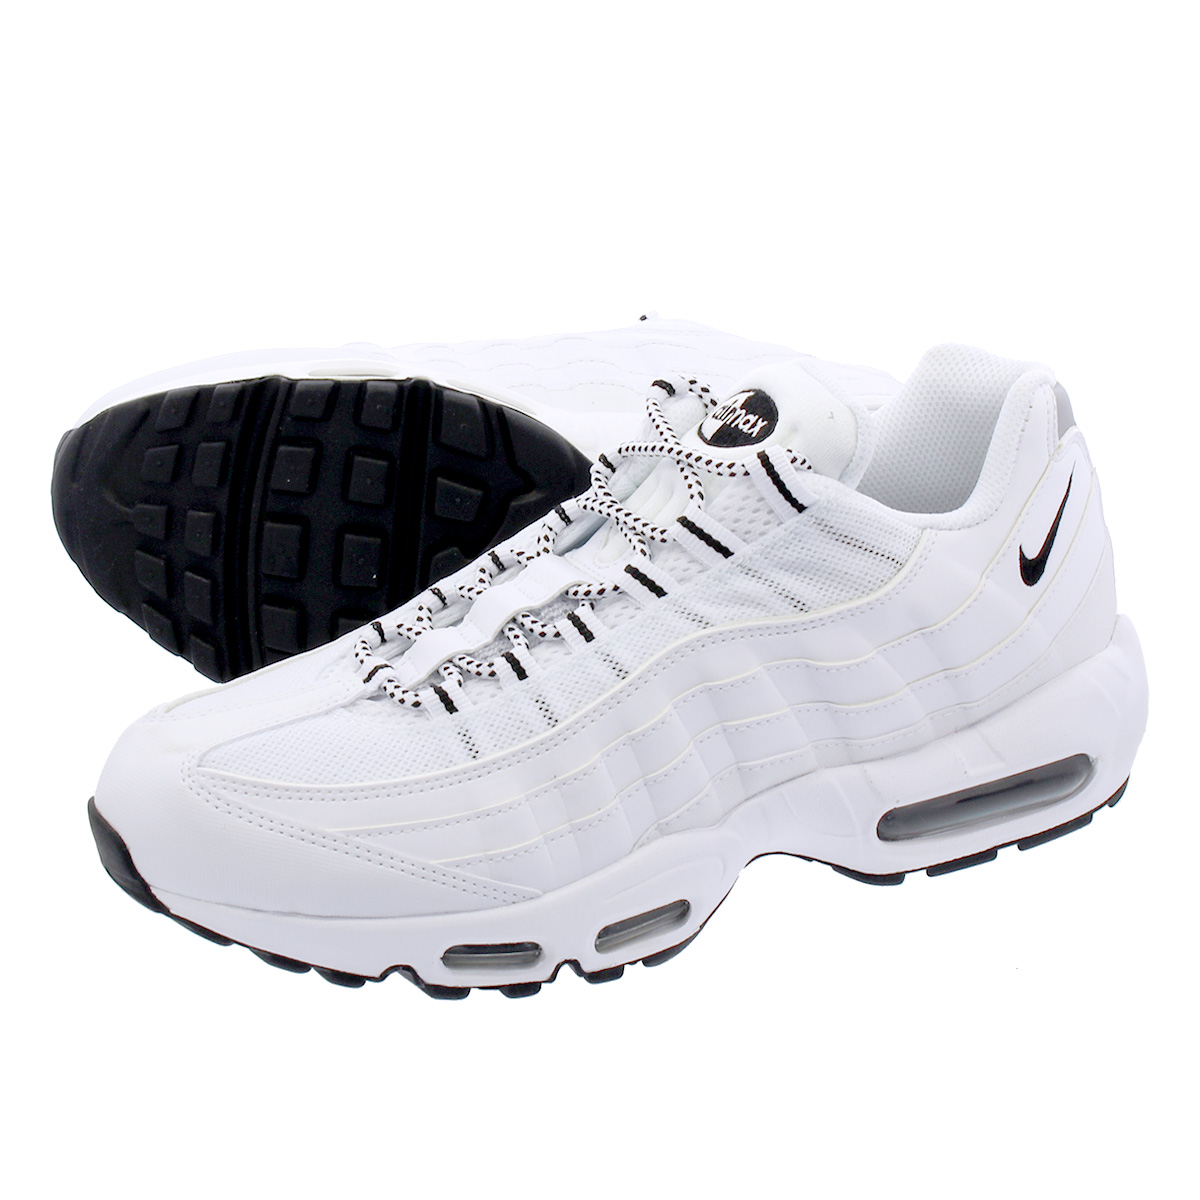 on sale b5373 f75db NIKE AIR MAX 95 WHITE BLACK